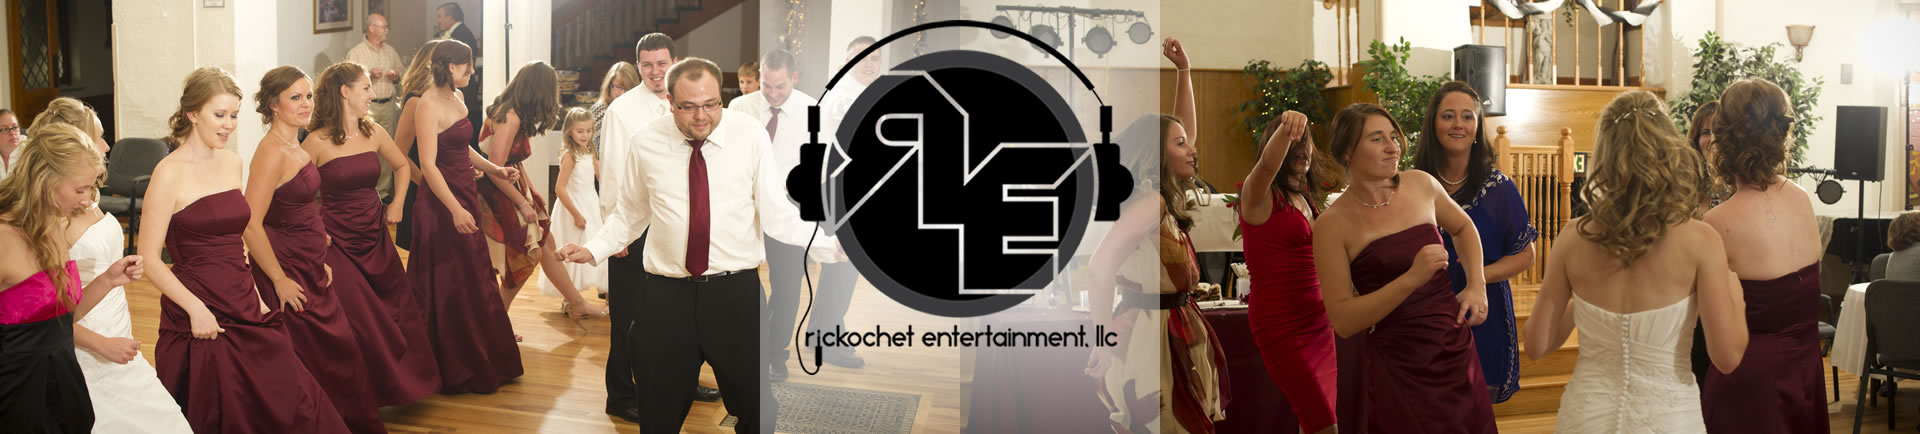 Book Your Event with Rickochet Today!